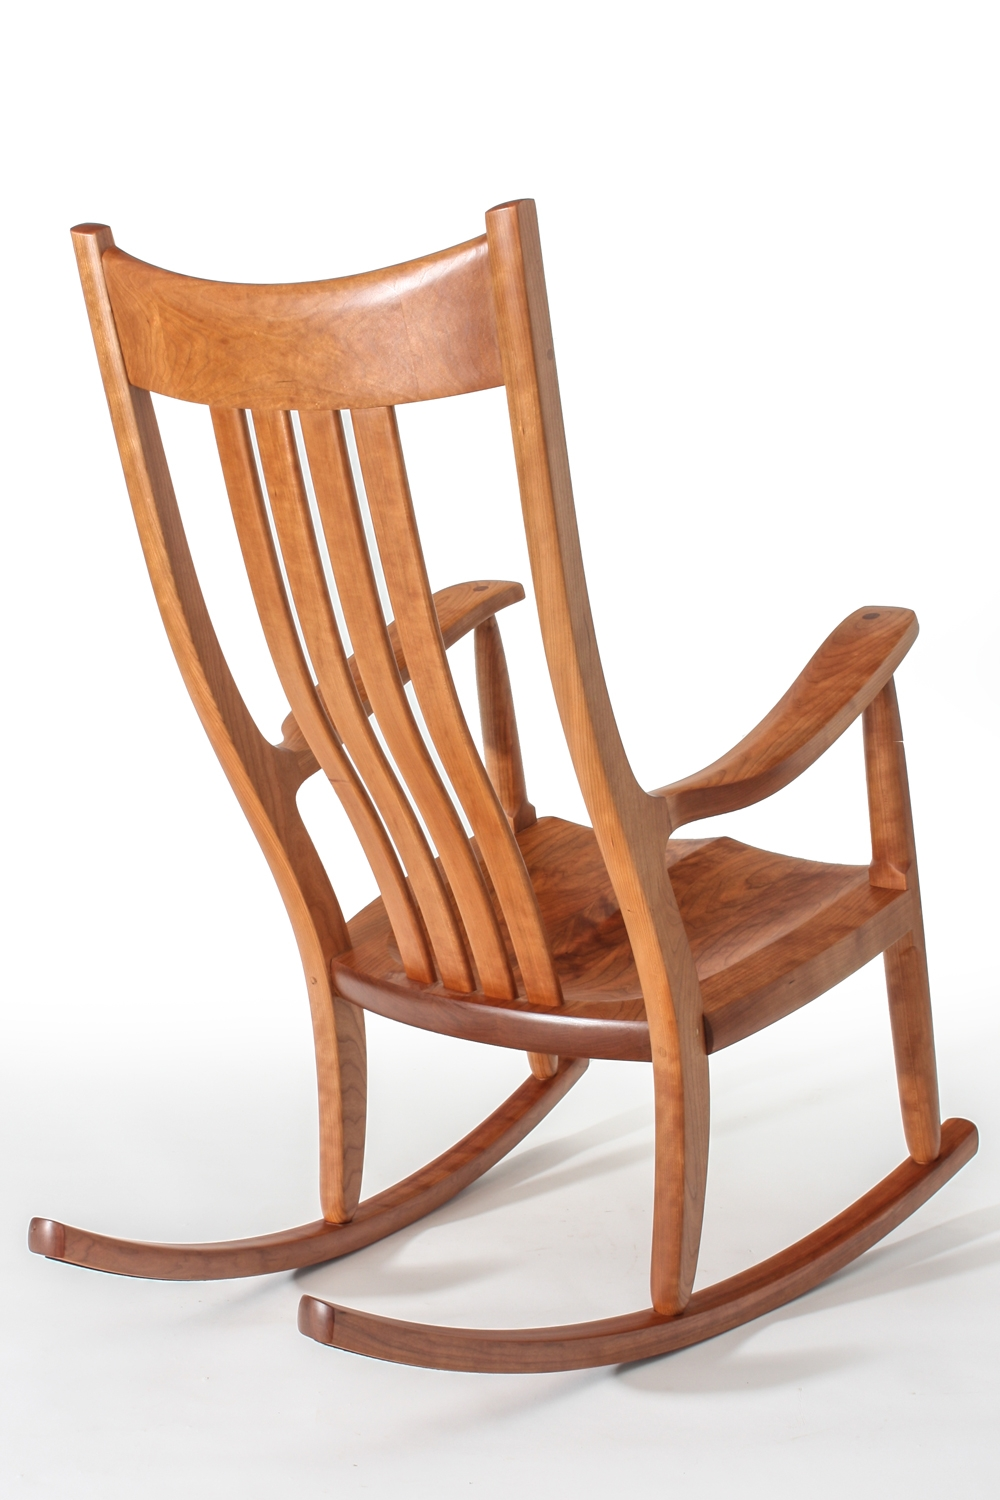 Marvelous Cherry Rocking Chairs Comfortable Handmade Heirloom Gmtry Best Dining Table And Chair Ideas Images Gmtryco